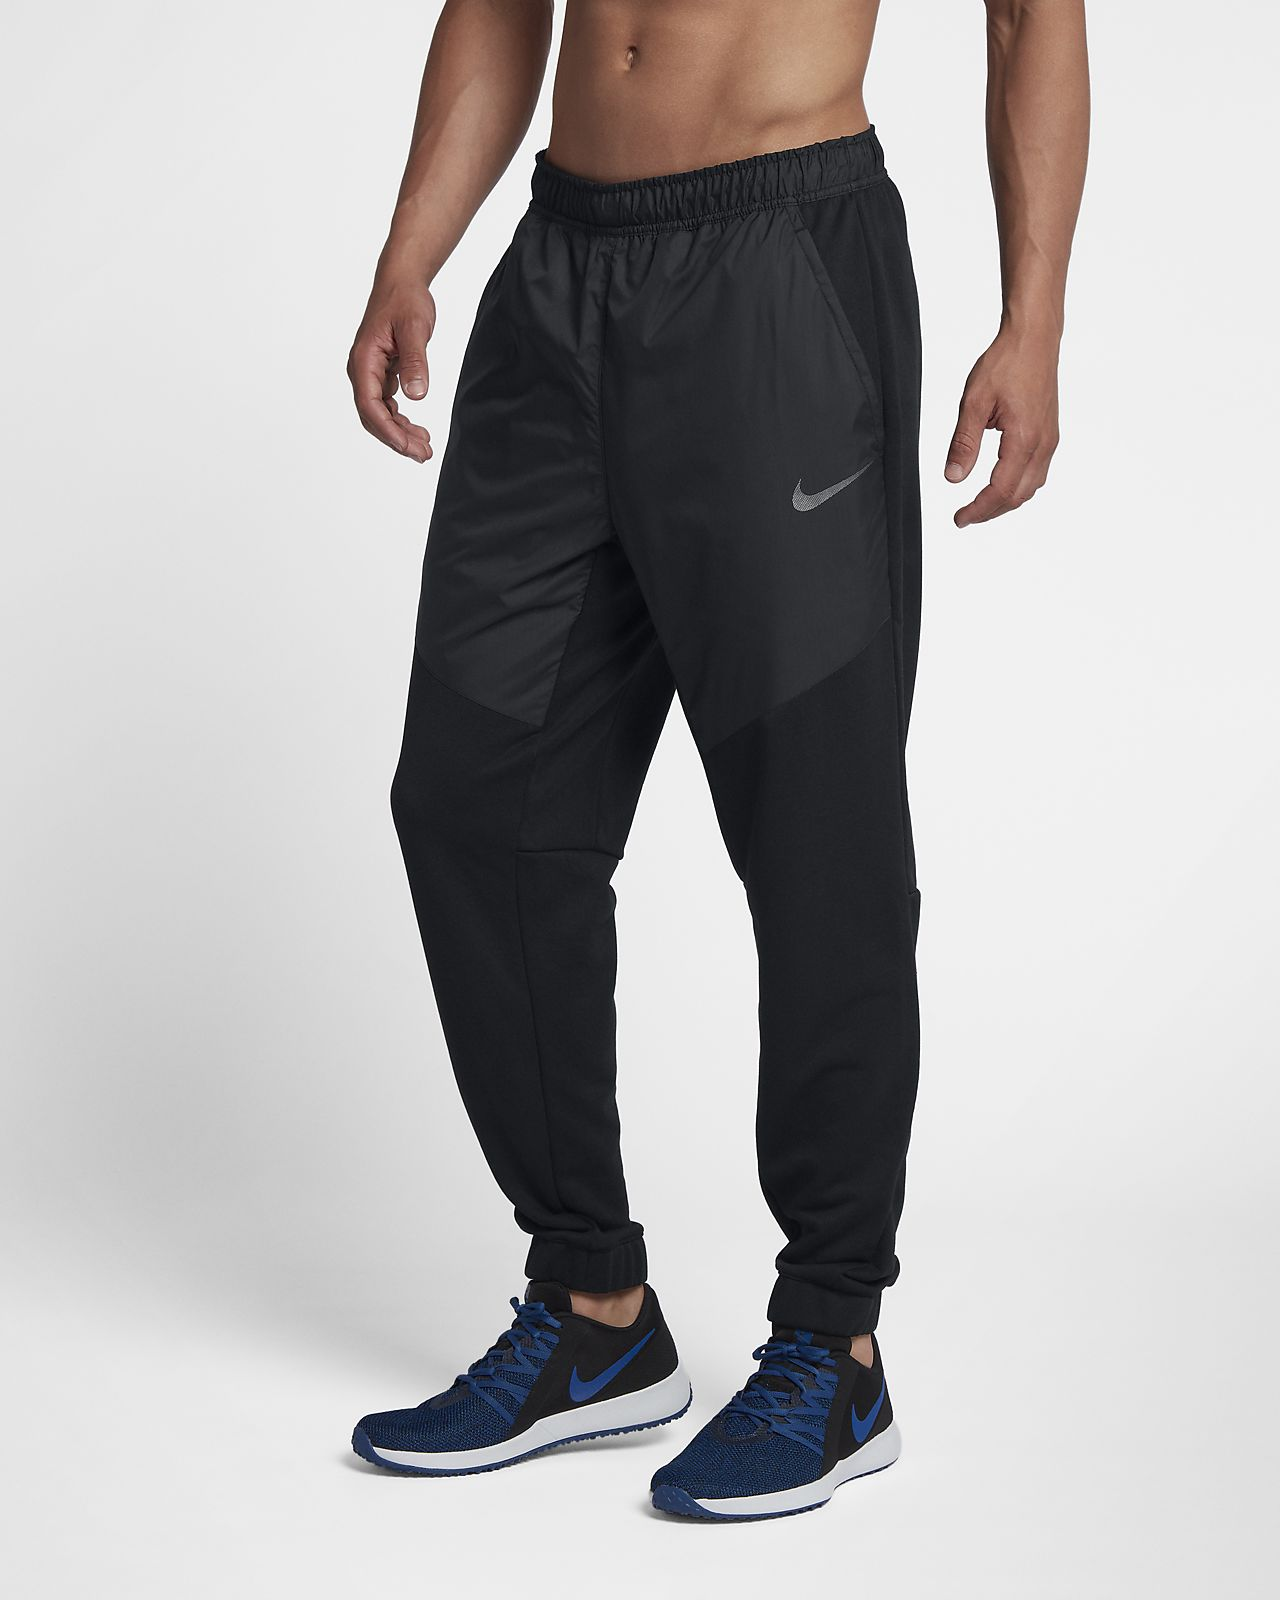 Nike Dri-FIT Utility-Fleece-Trainingshose für Herren